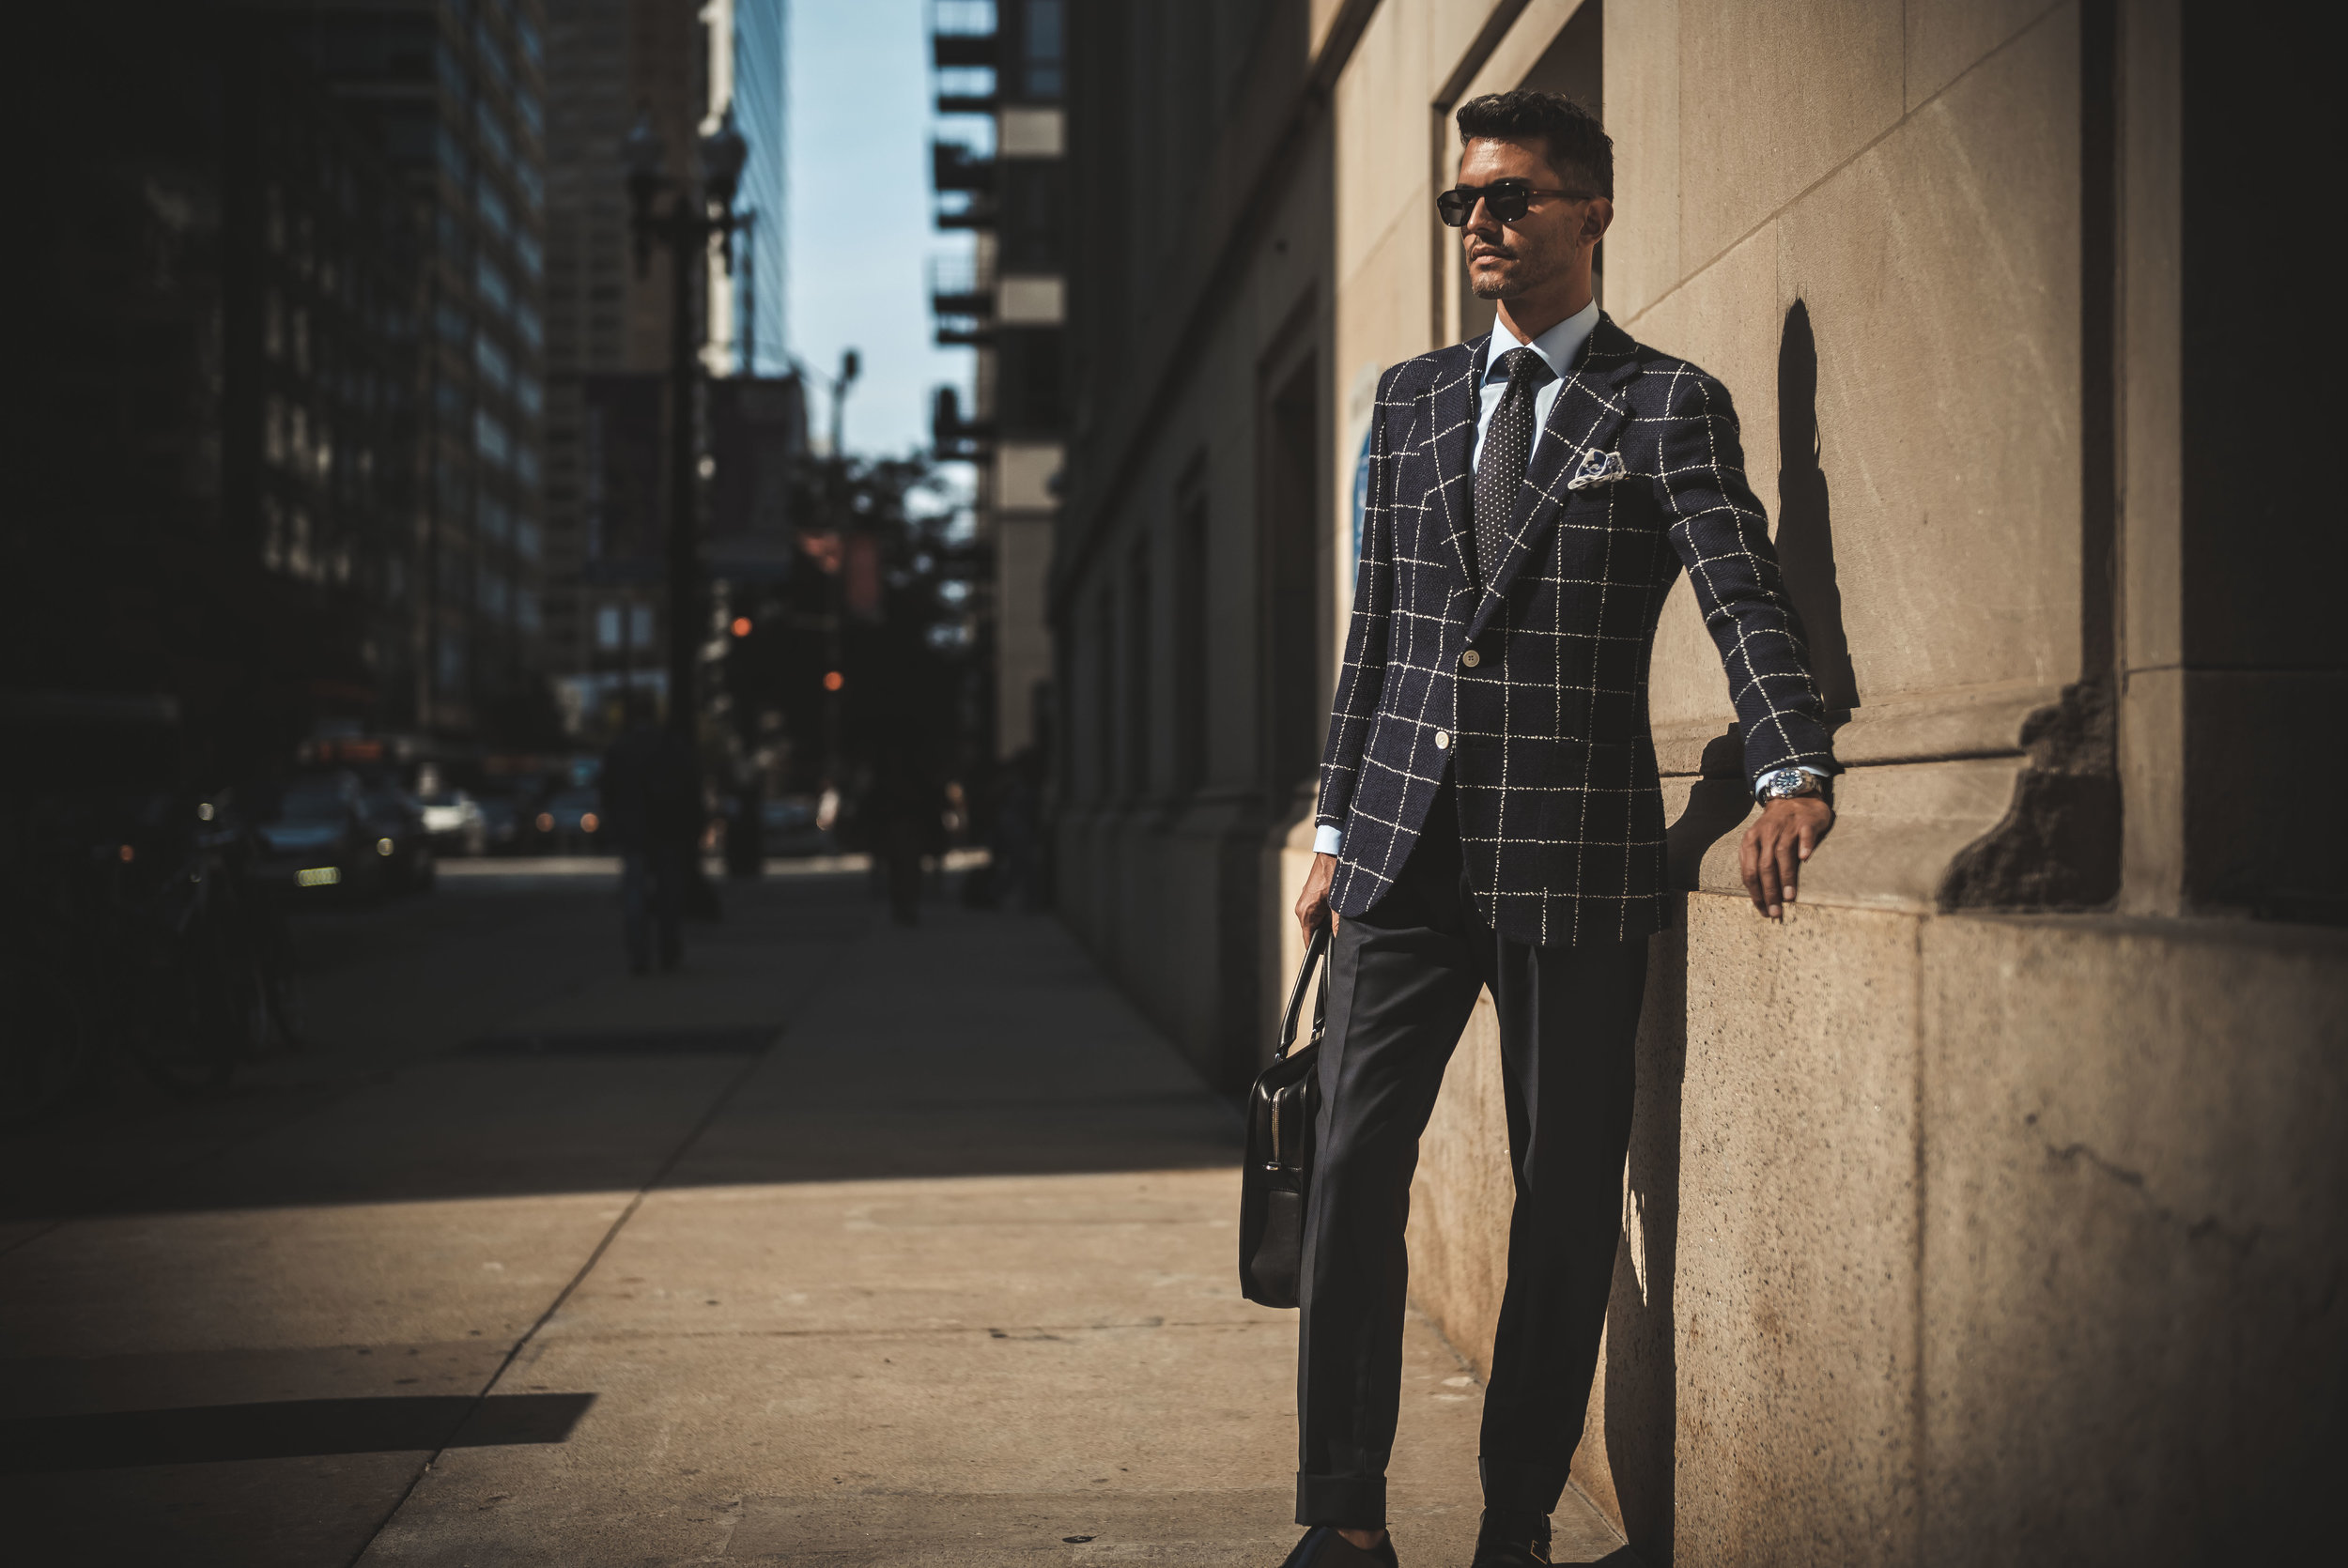 TRUE BESPOKE - Each suit is cut to your individual pattern to ensure the perfect fit. Our team of pattern makers boasts over 100 years of experience in designing the perfect silhouette for any build.